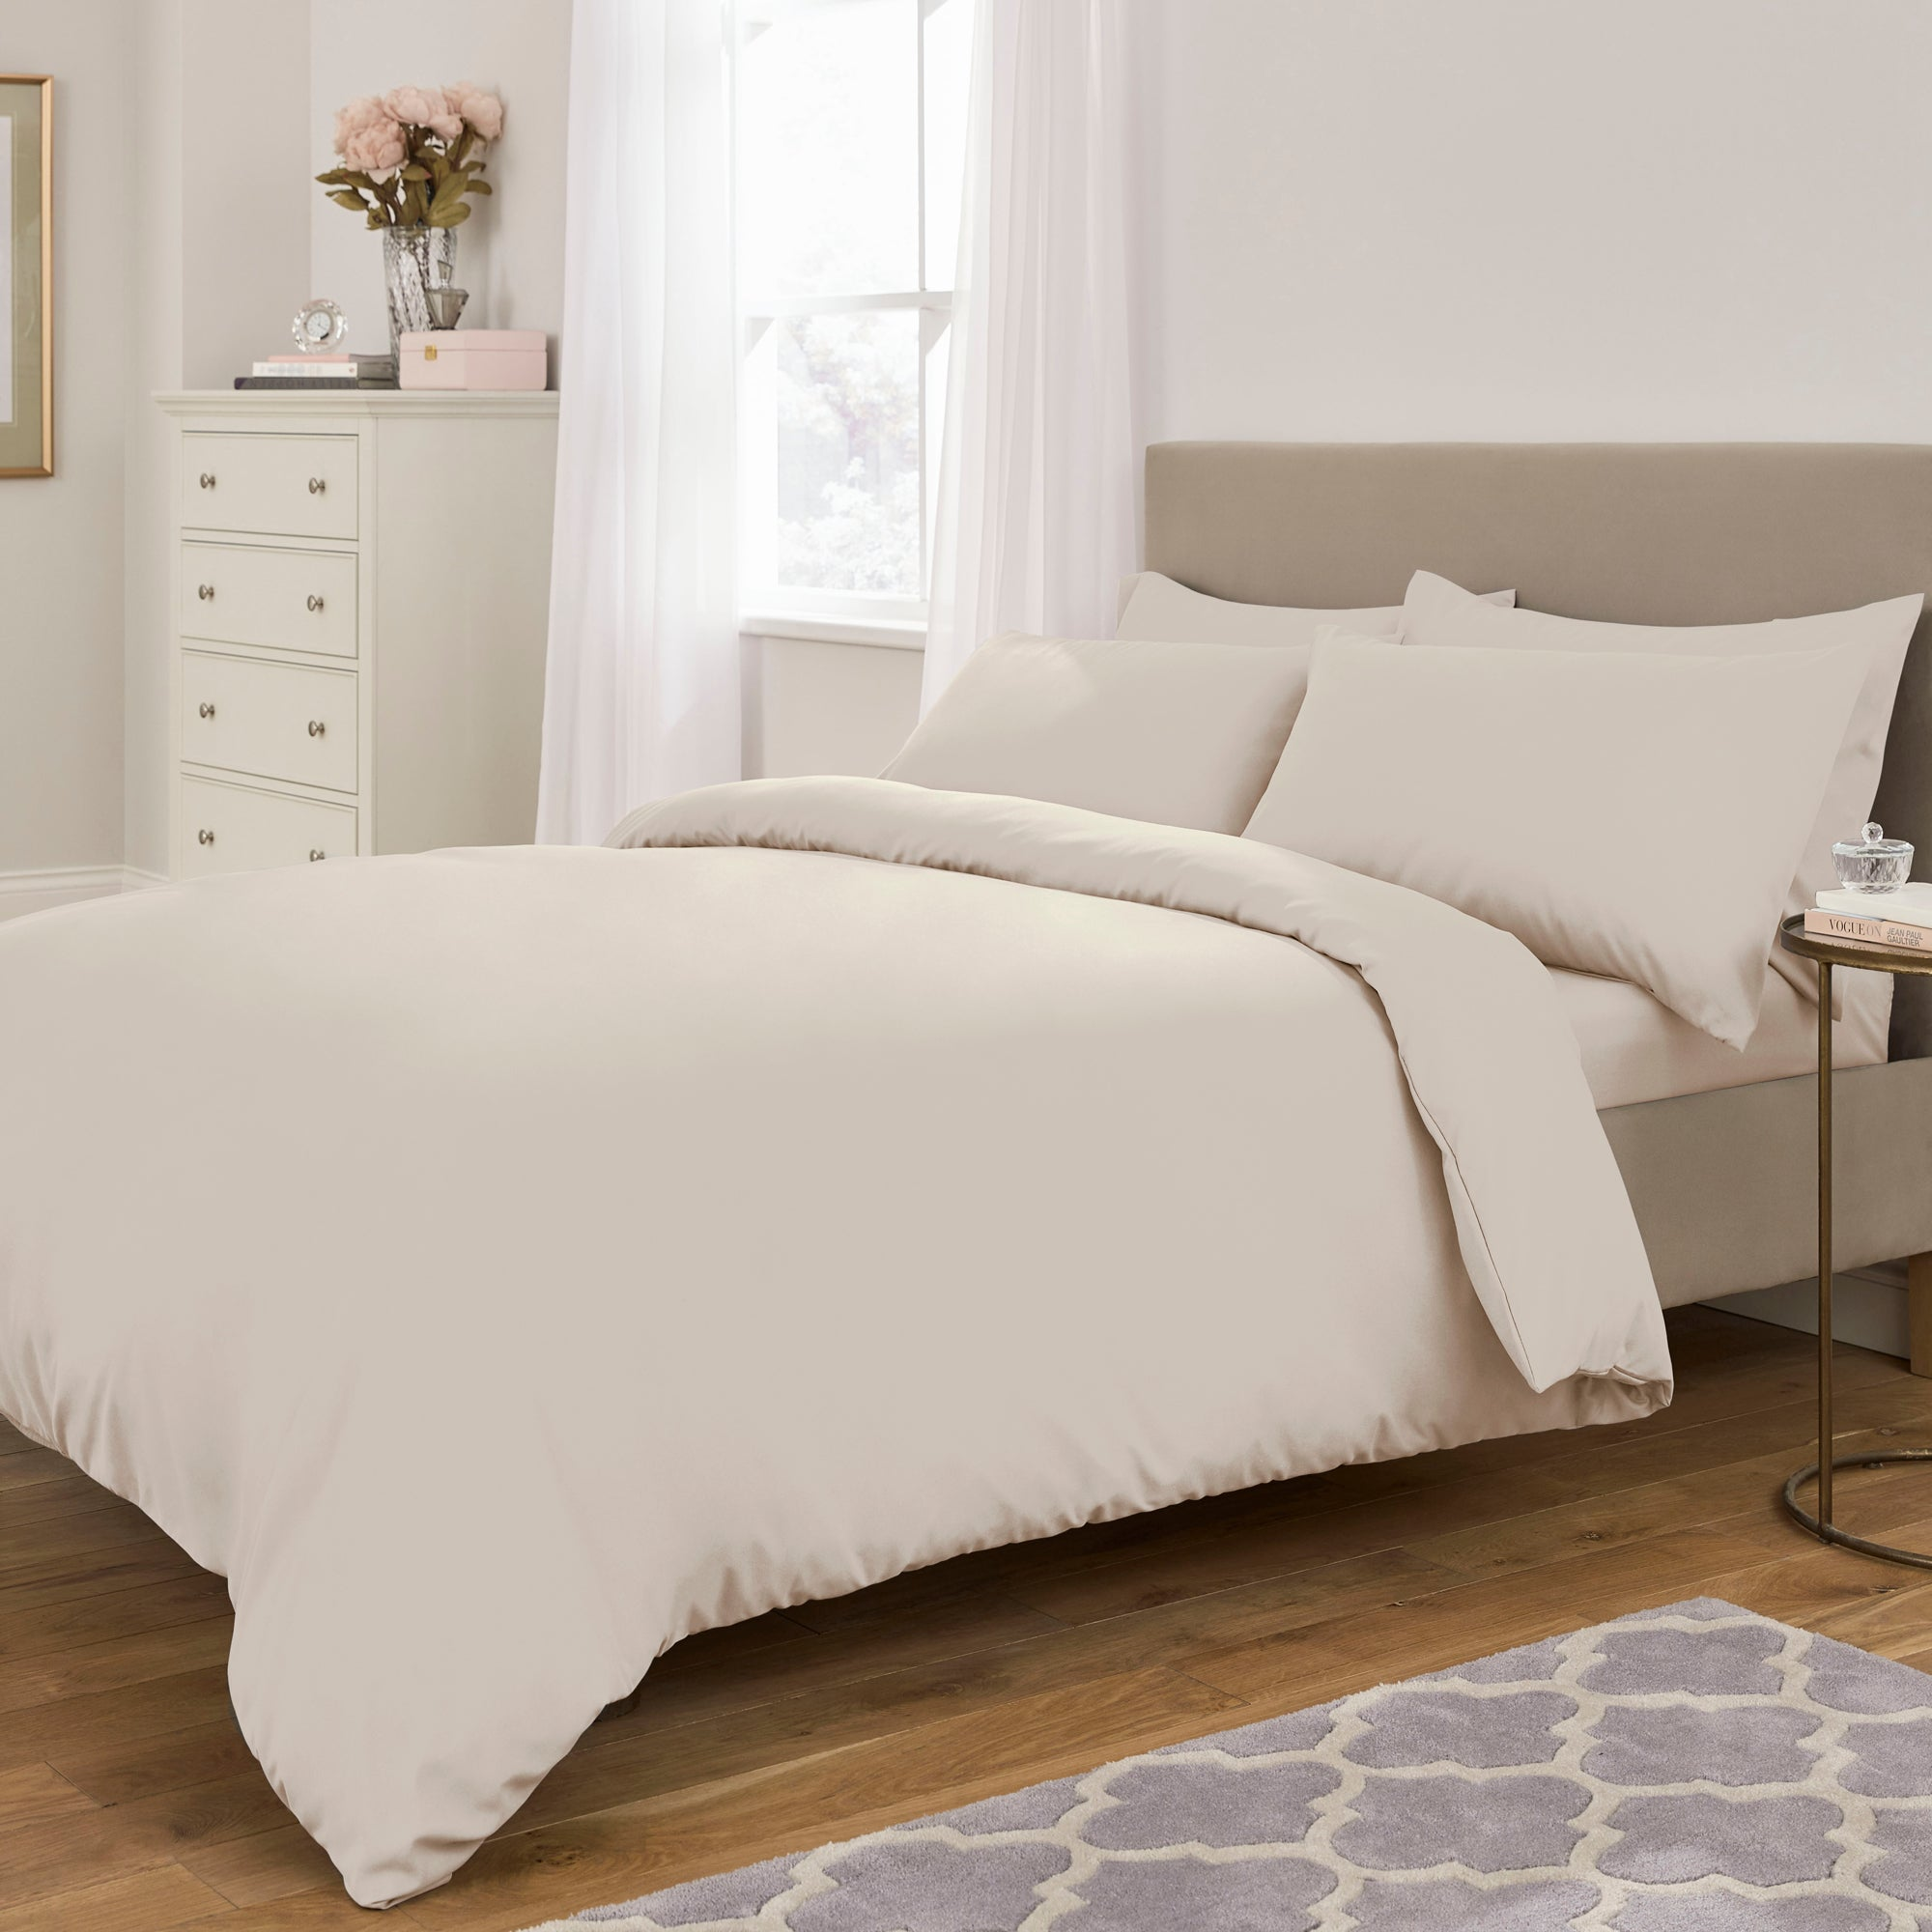 Fogarty Soft Touch Natural Bed Linen Collection